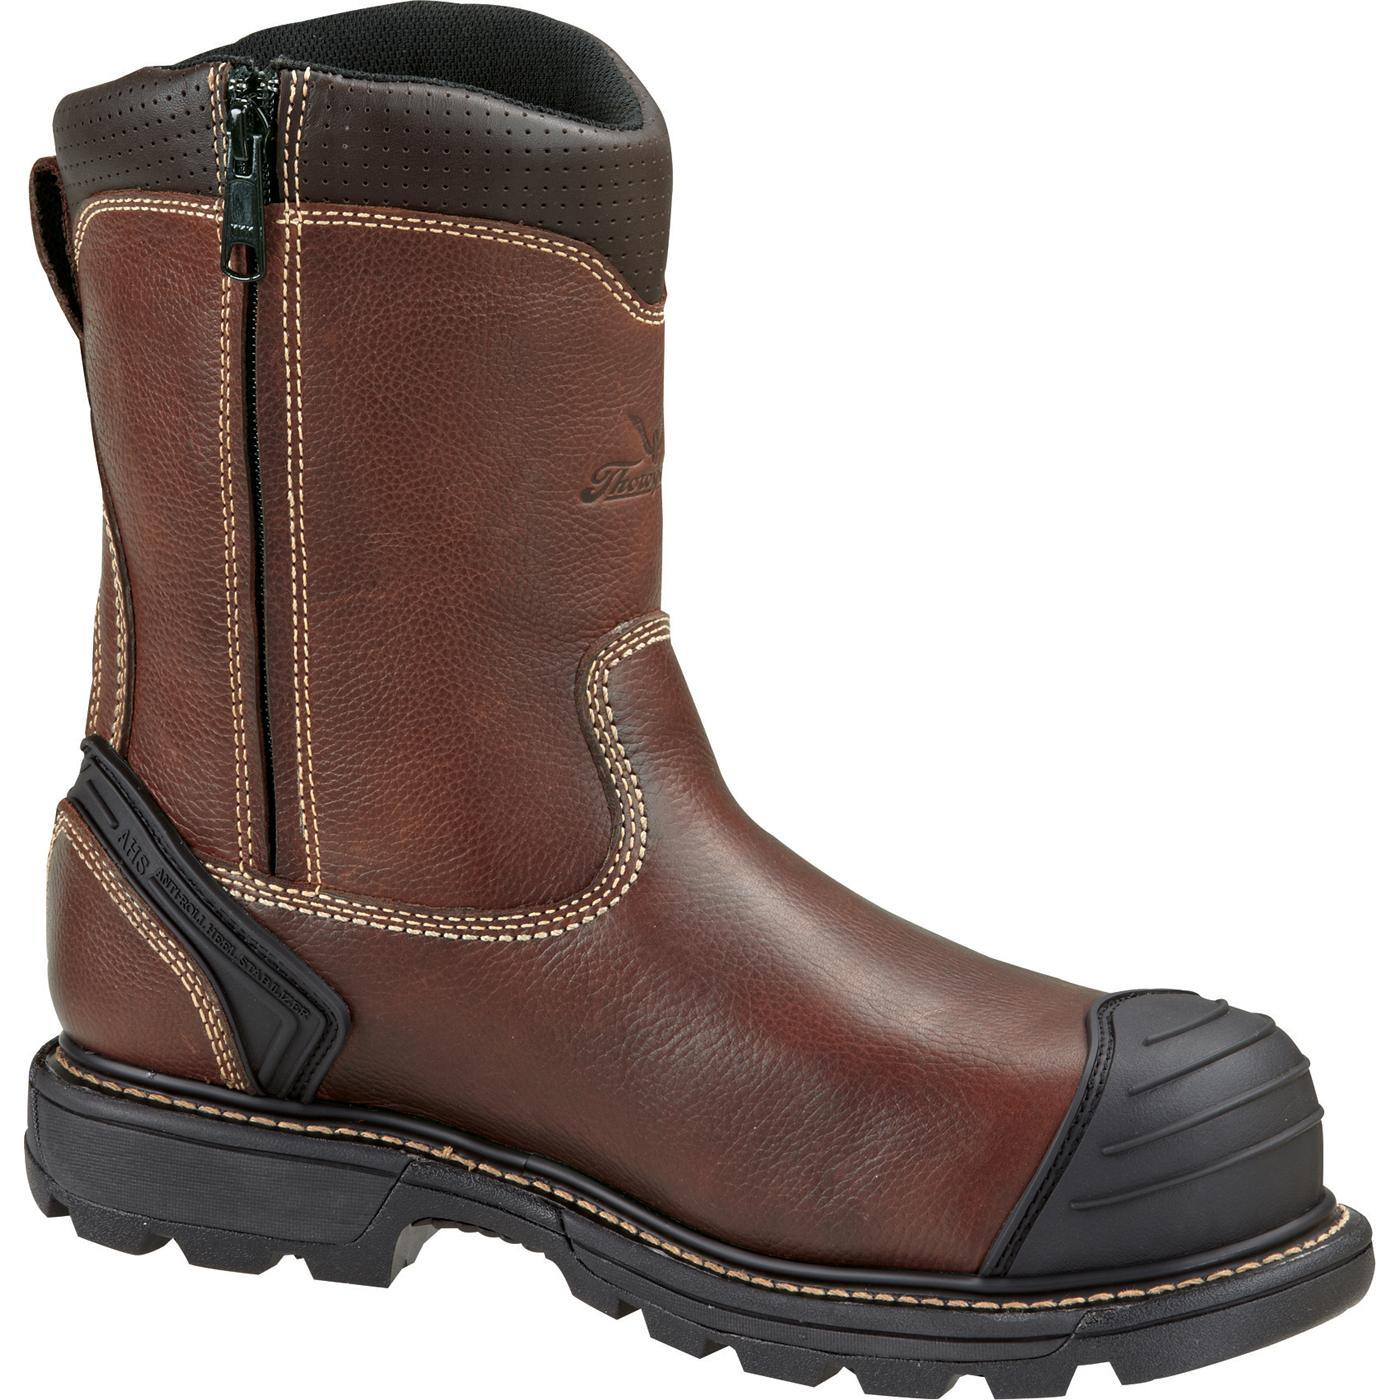 Thorogood Composite Toe Side Zipper Wellington Work Boot, #804-4440